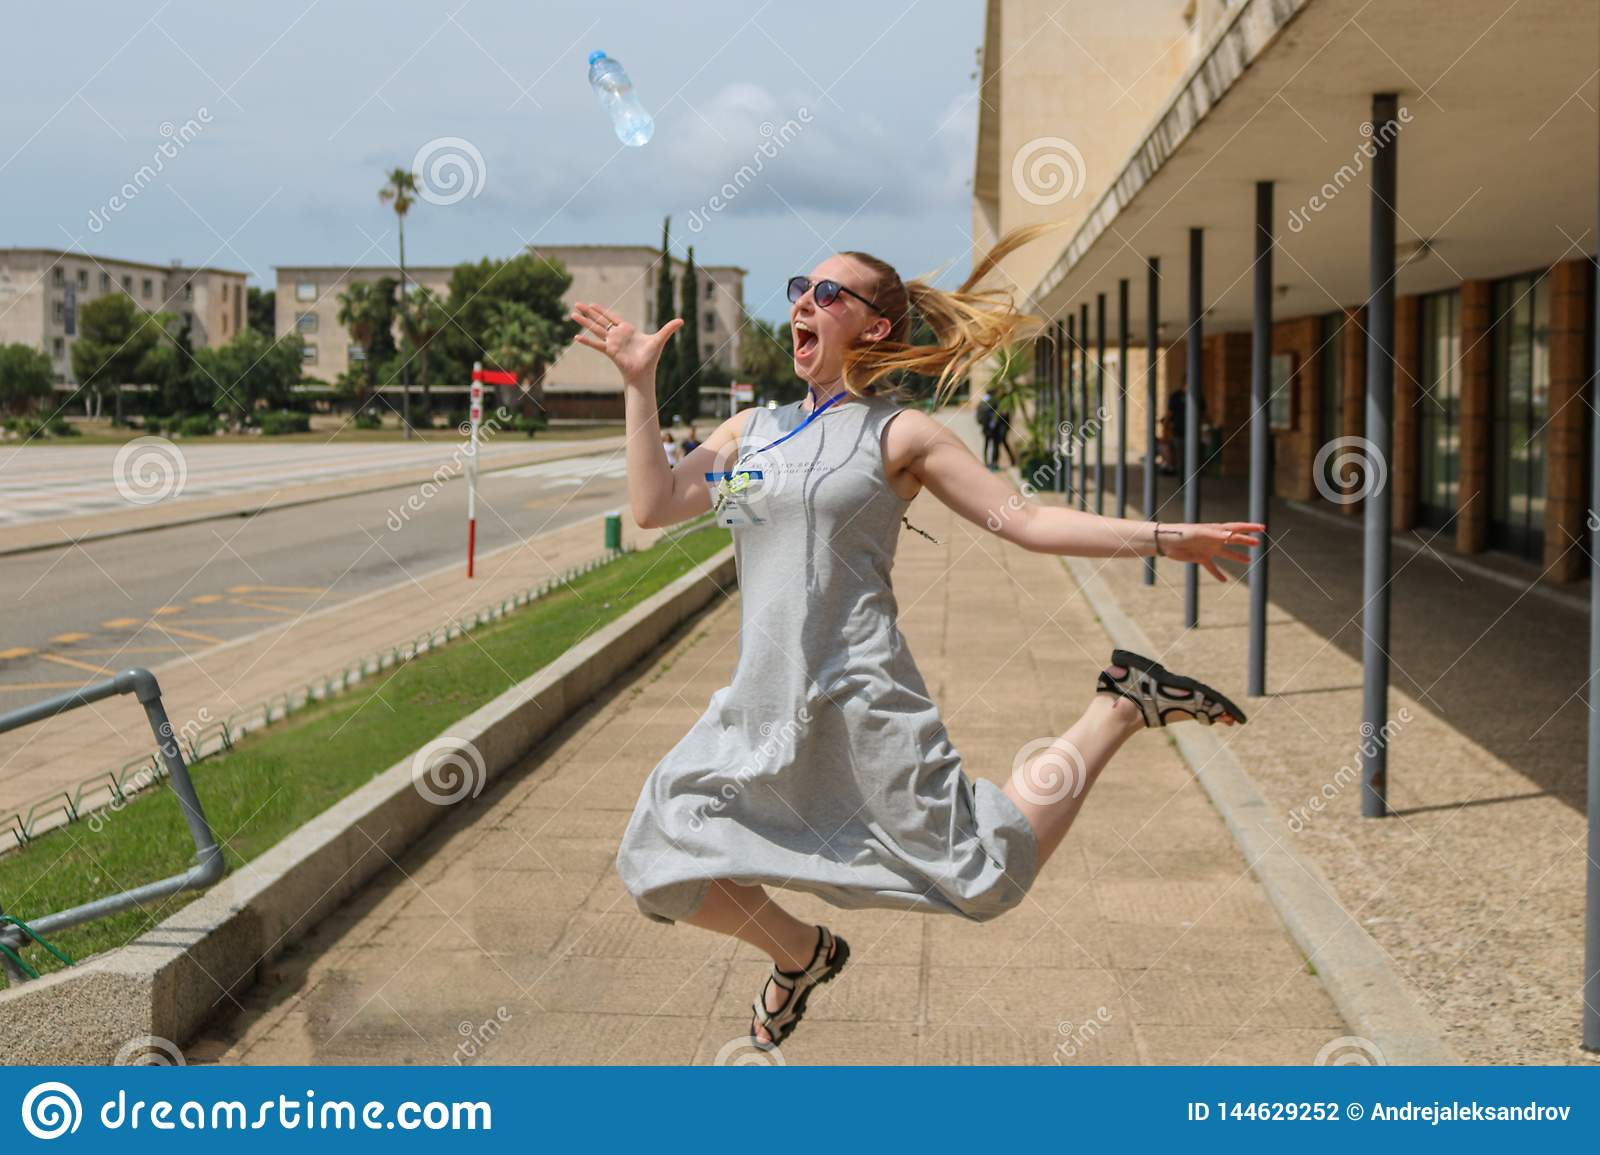 Blonde girl jumping, catching a water bottle